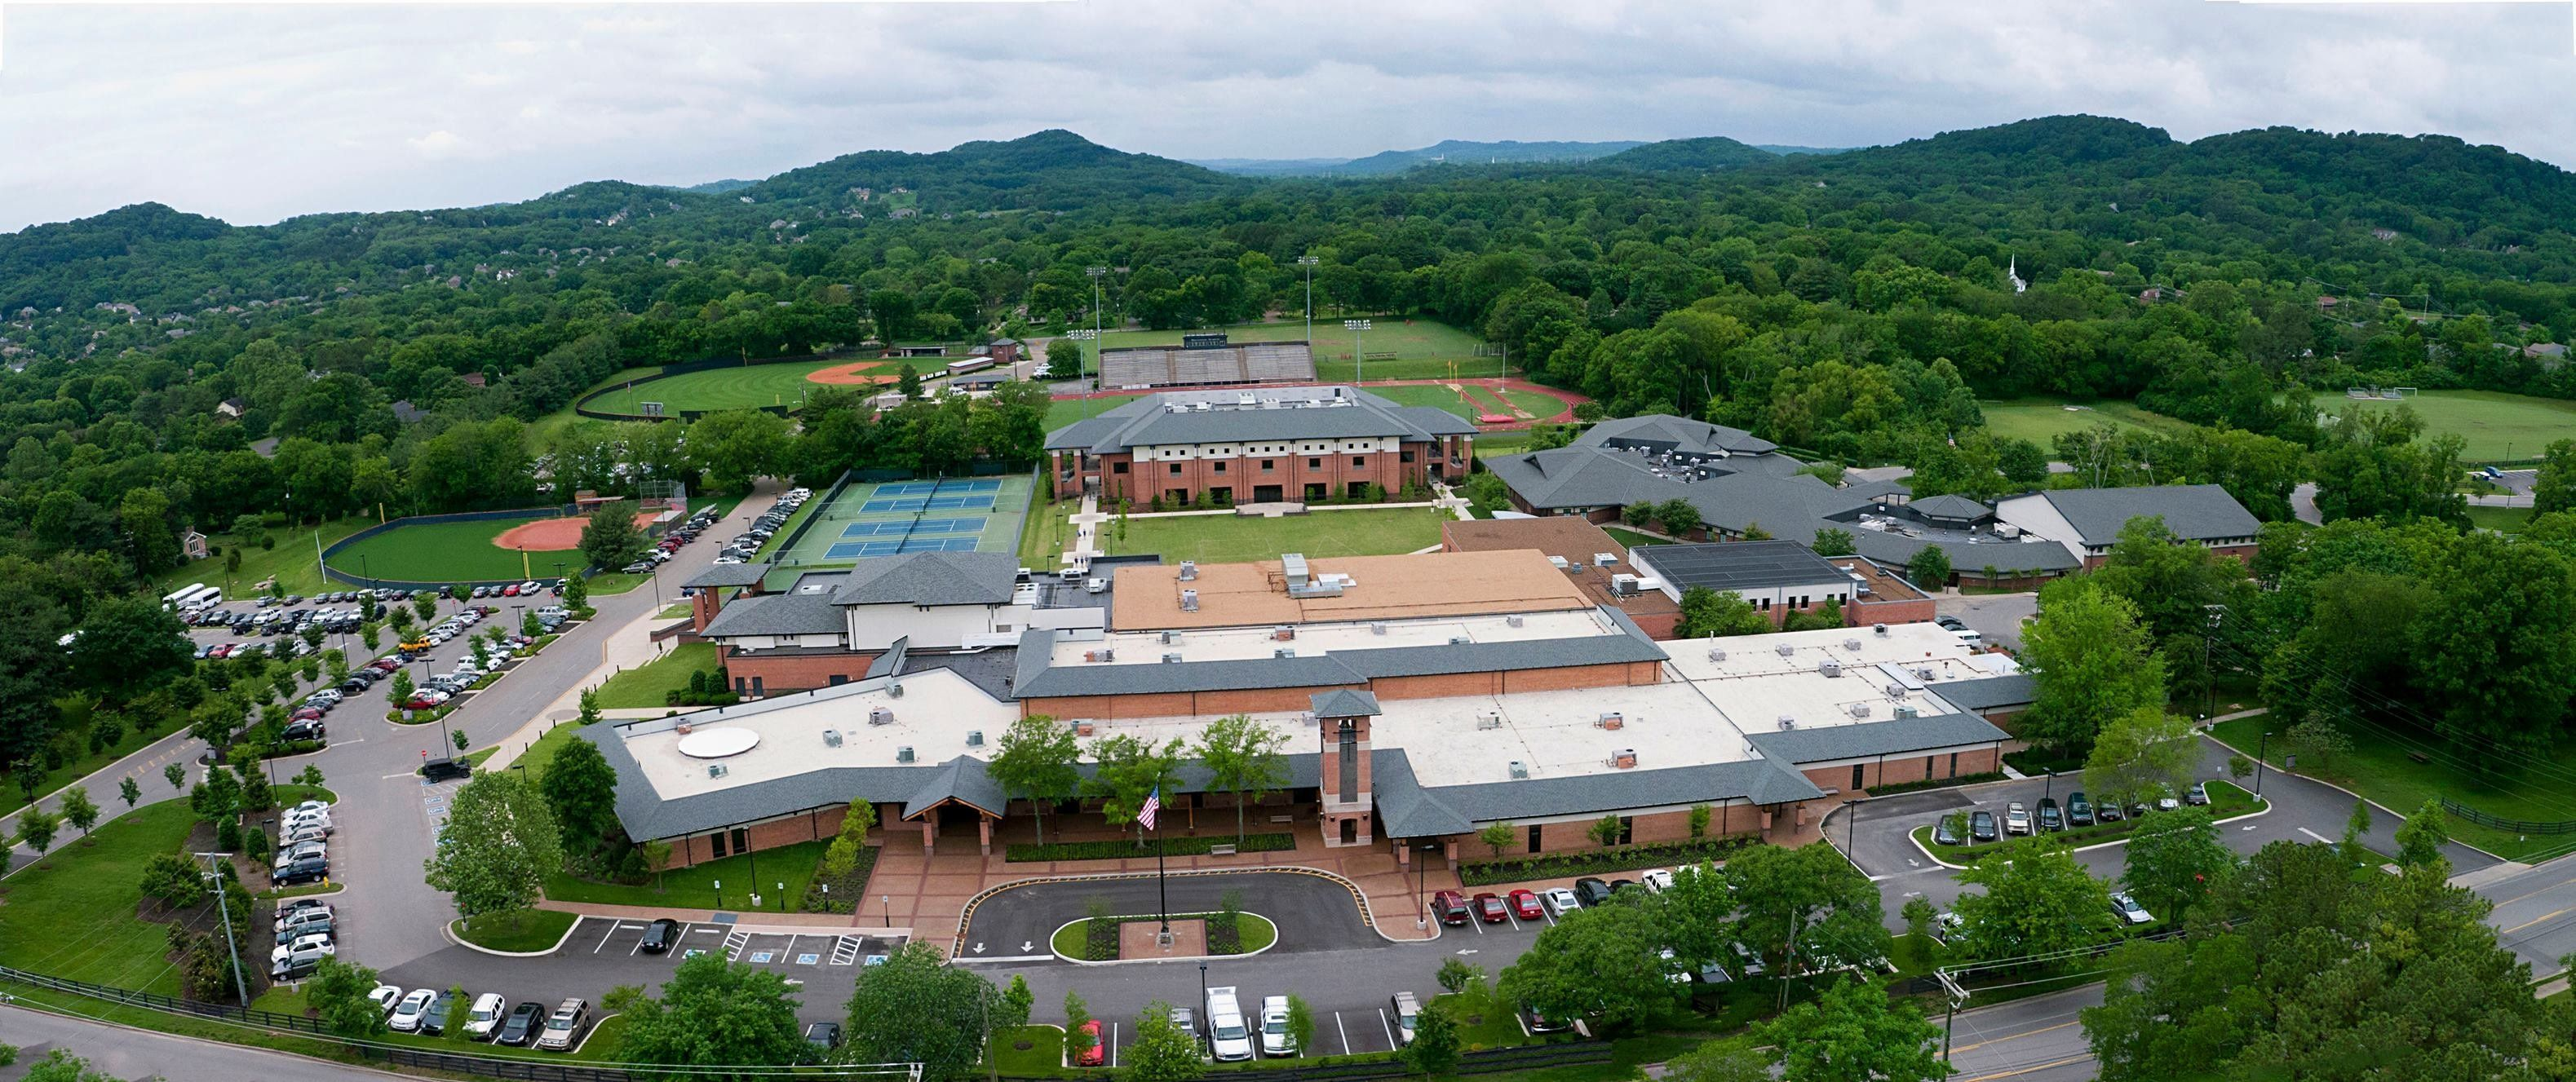 An aerial view of Christian private school Brentwood Academy.